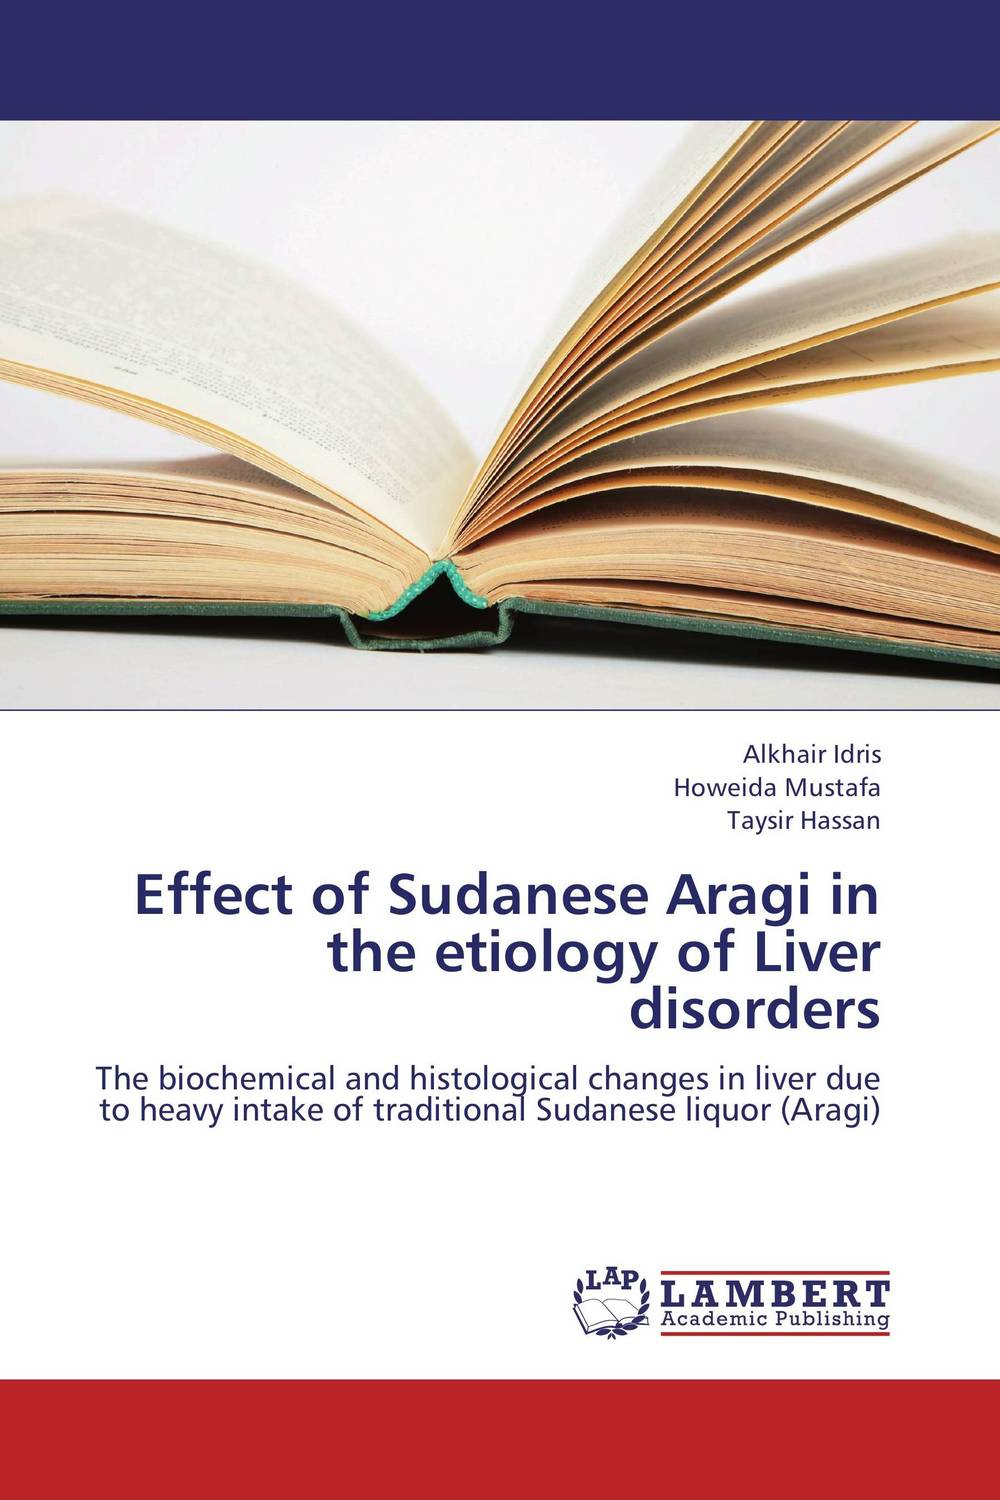 Effect of Sudanese Aragi in the etiology of Liver disorders psychiatric disorders in postpartum period